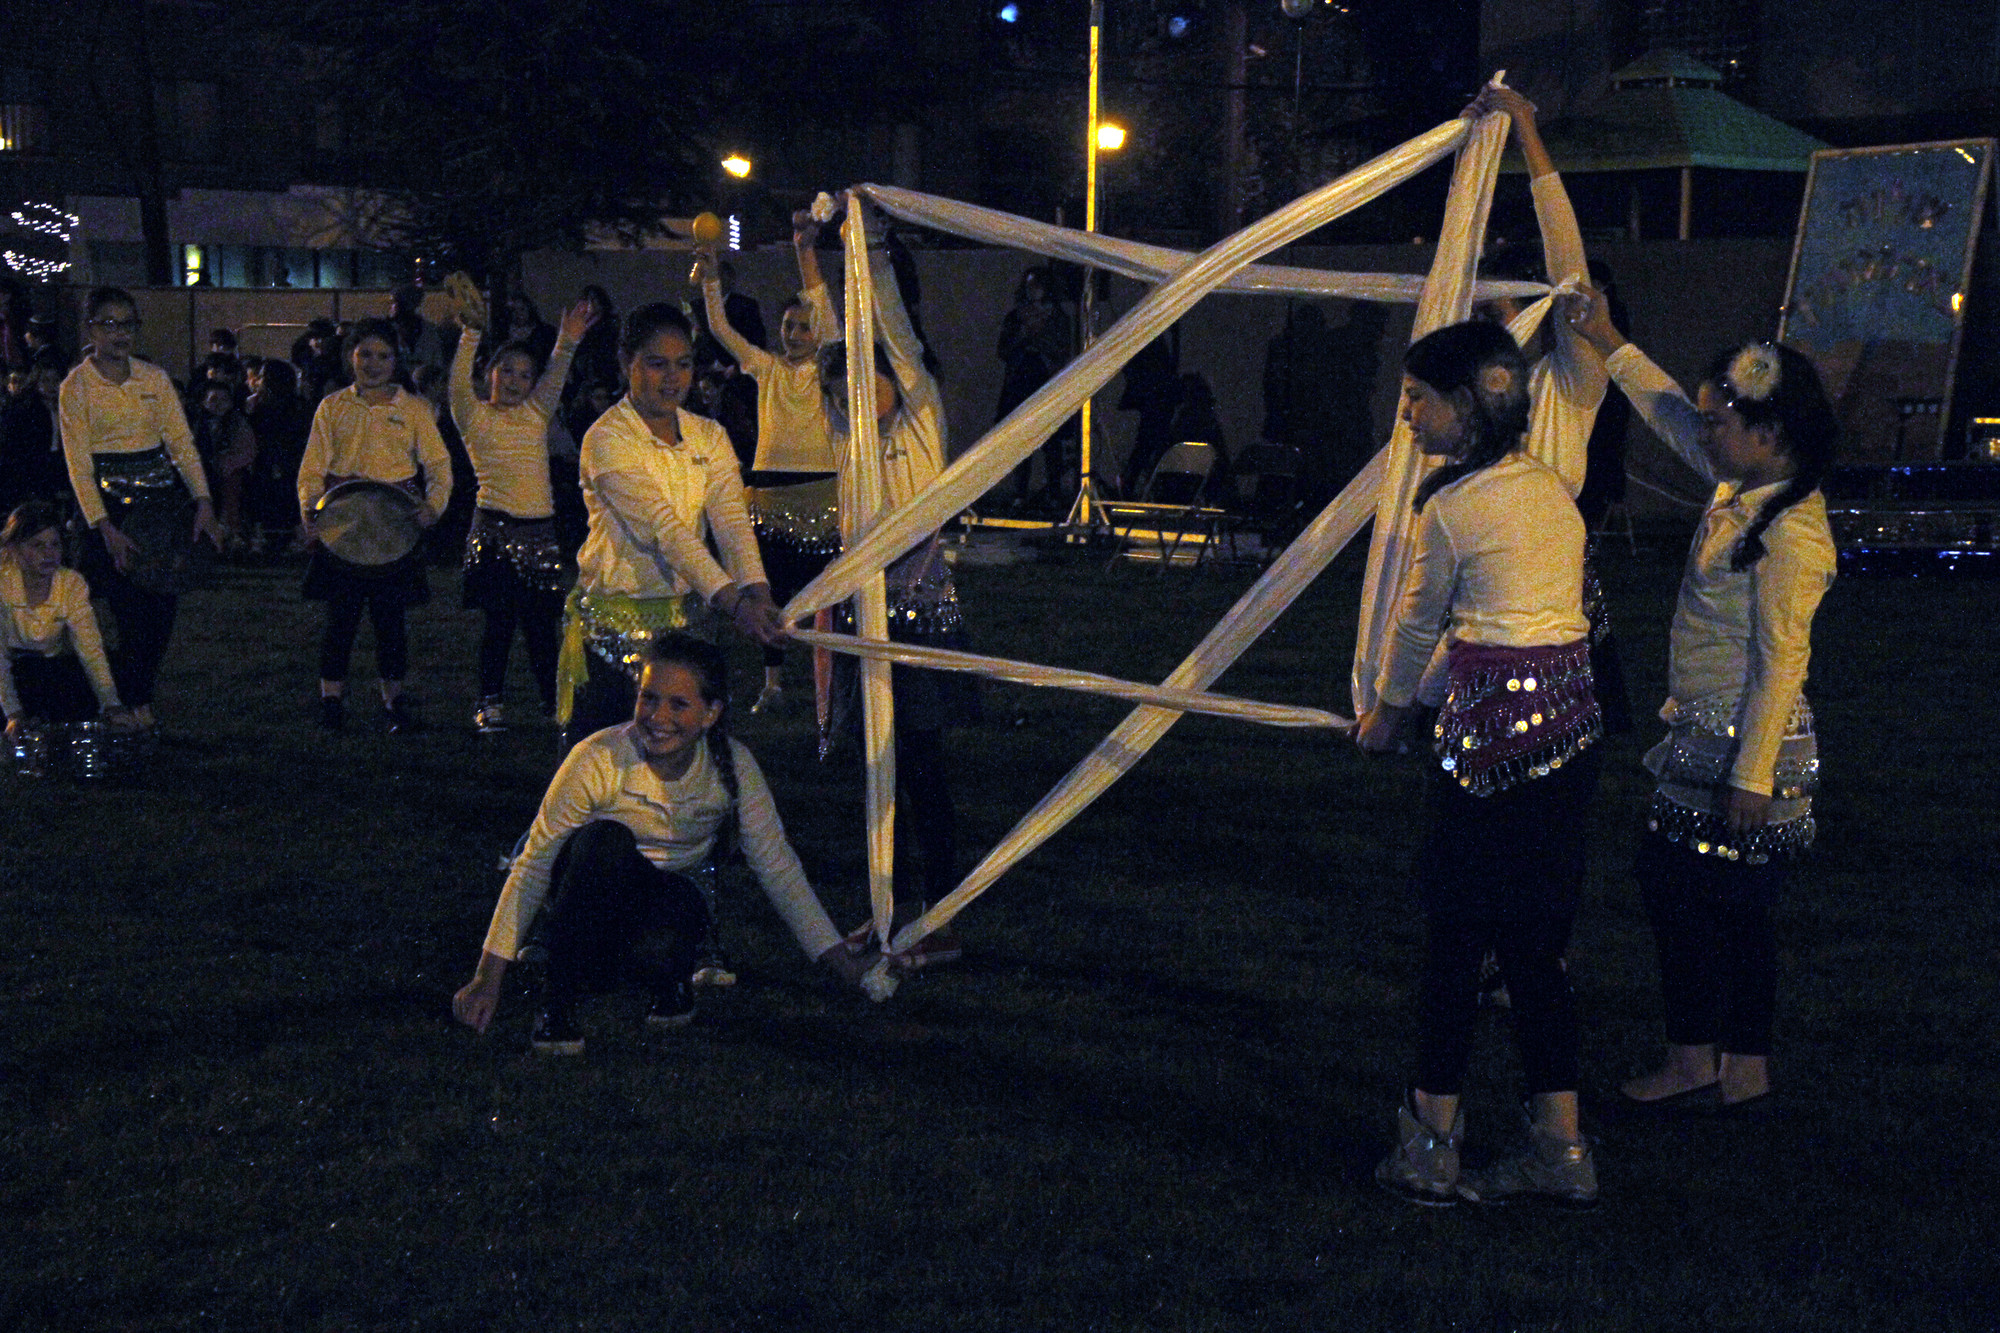 Students hold a Star of David during HAFTR's night time event that marked Israel's 65th anniversary.